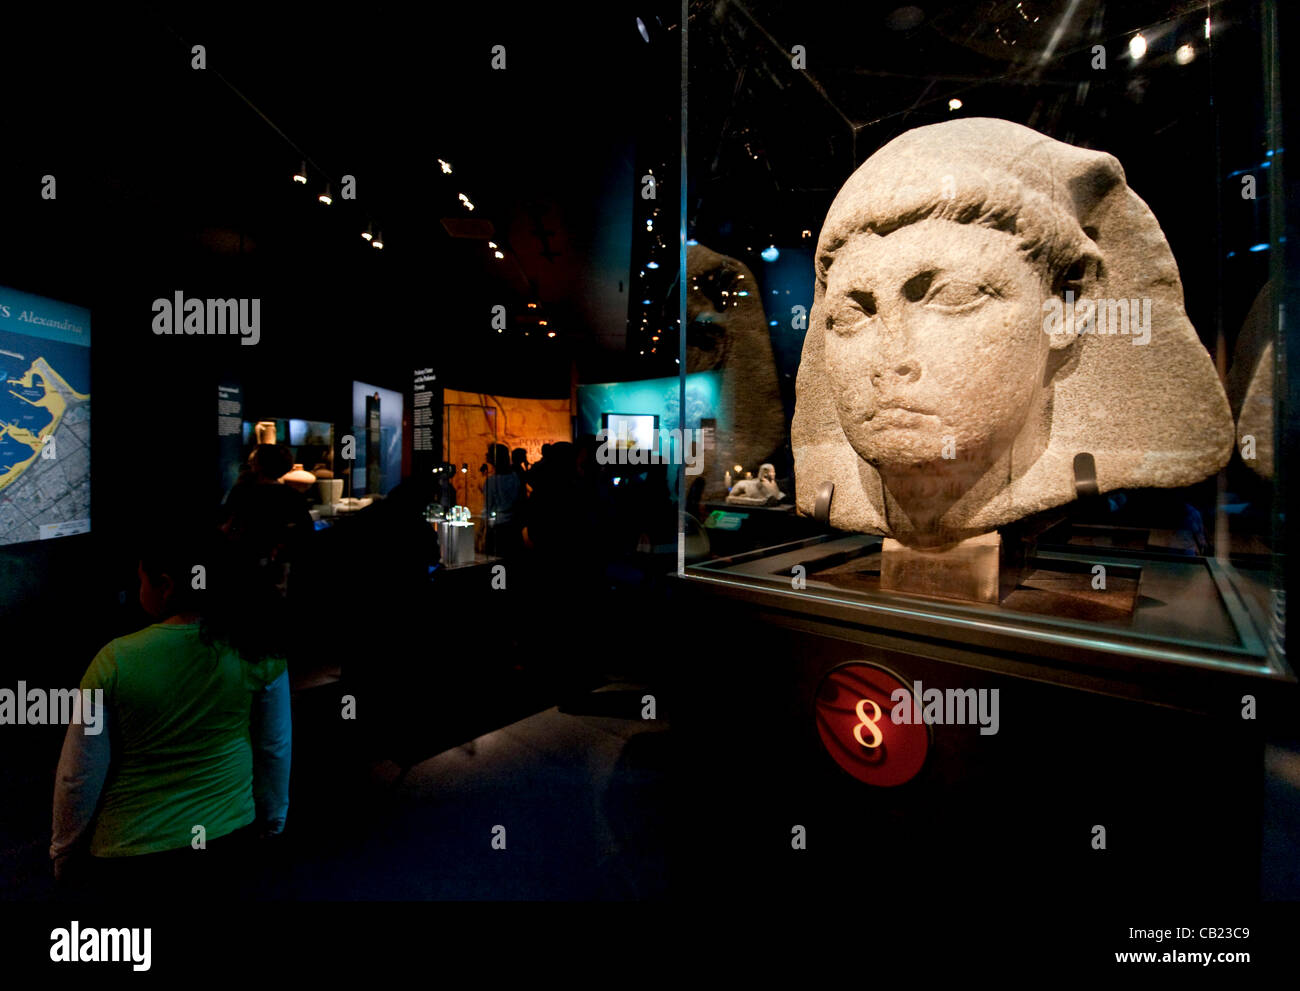 May 22, 2012 - Los Angeles, California, USA -  A colossal head of Caesarion (Little Caesar), the son of Cleopatra Stock Photo